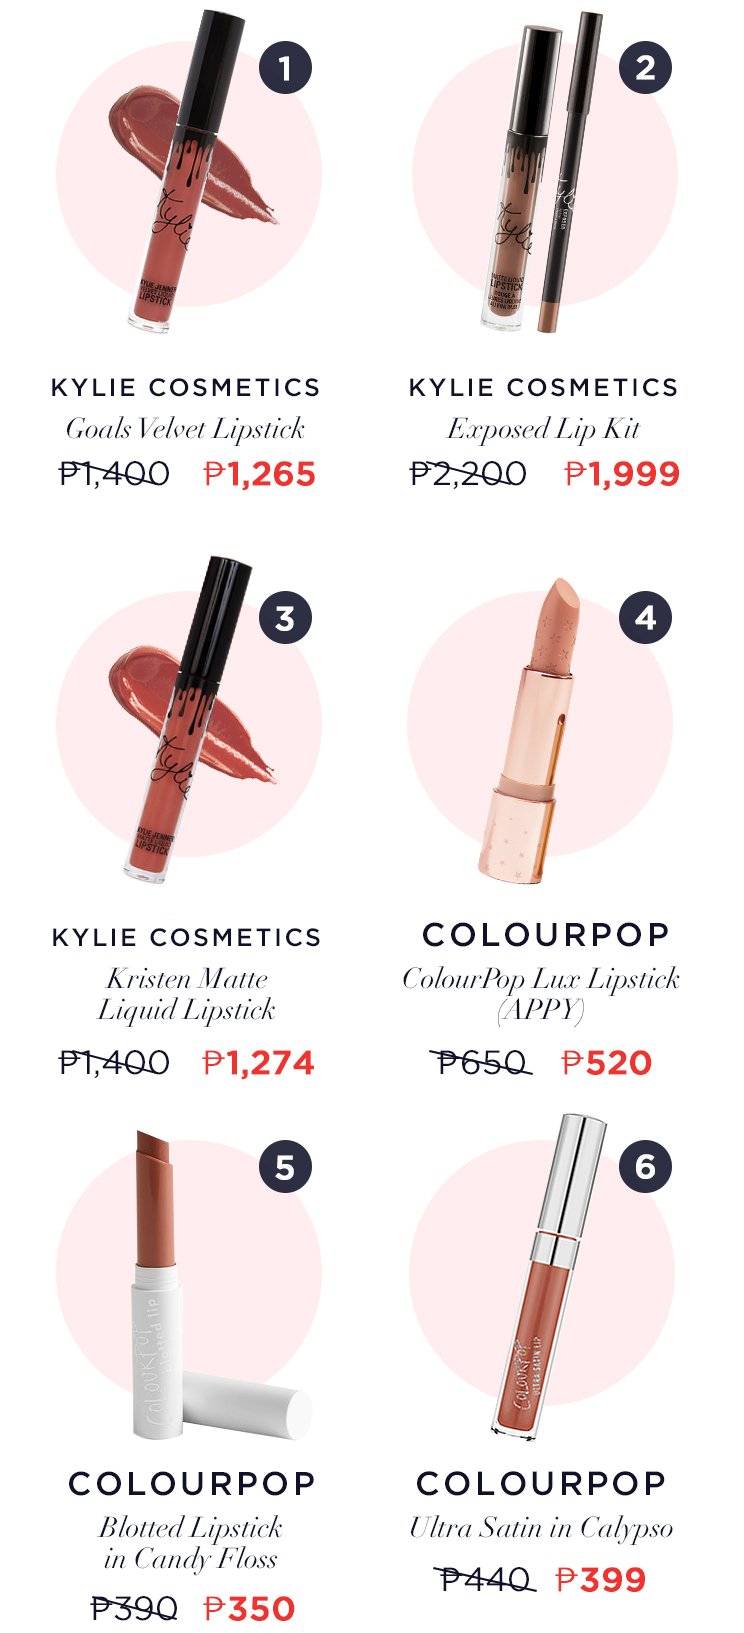 Its Lipstick Week Heres A List Of All Our Freebies Discounts Kailijumei Ready Stock 2 Kylie Cosmetics Exposed Lip Kit 9 Off At P1999 Shop It Here 3 Kristen Matte Liquid